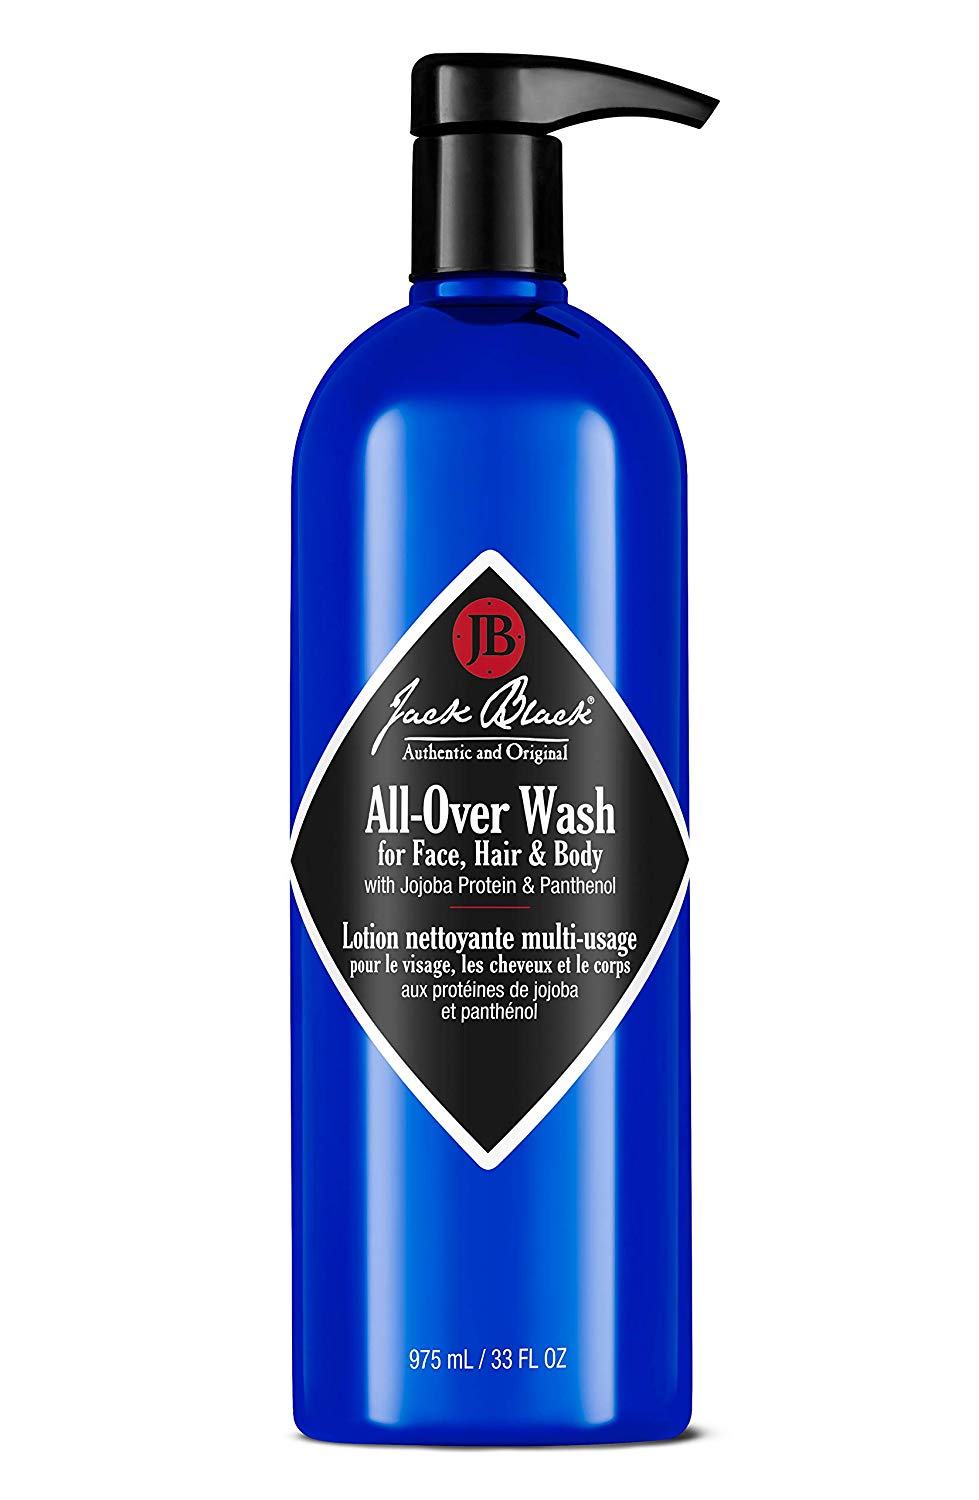 JACK BLACK – All-Over Wash